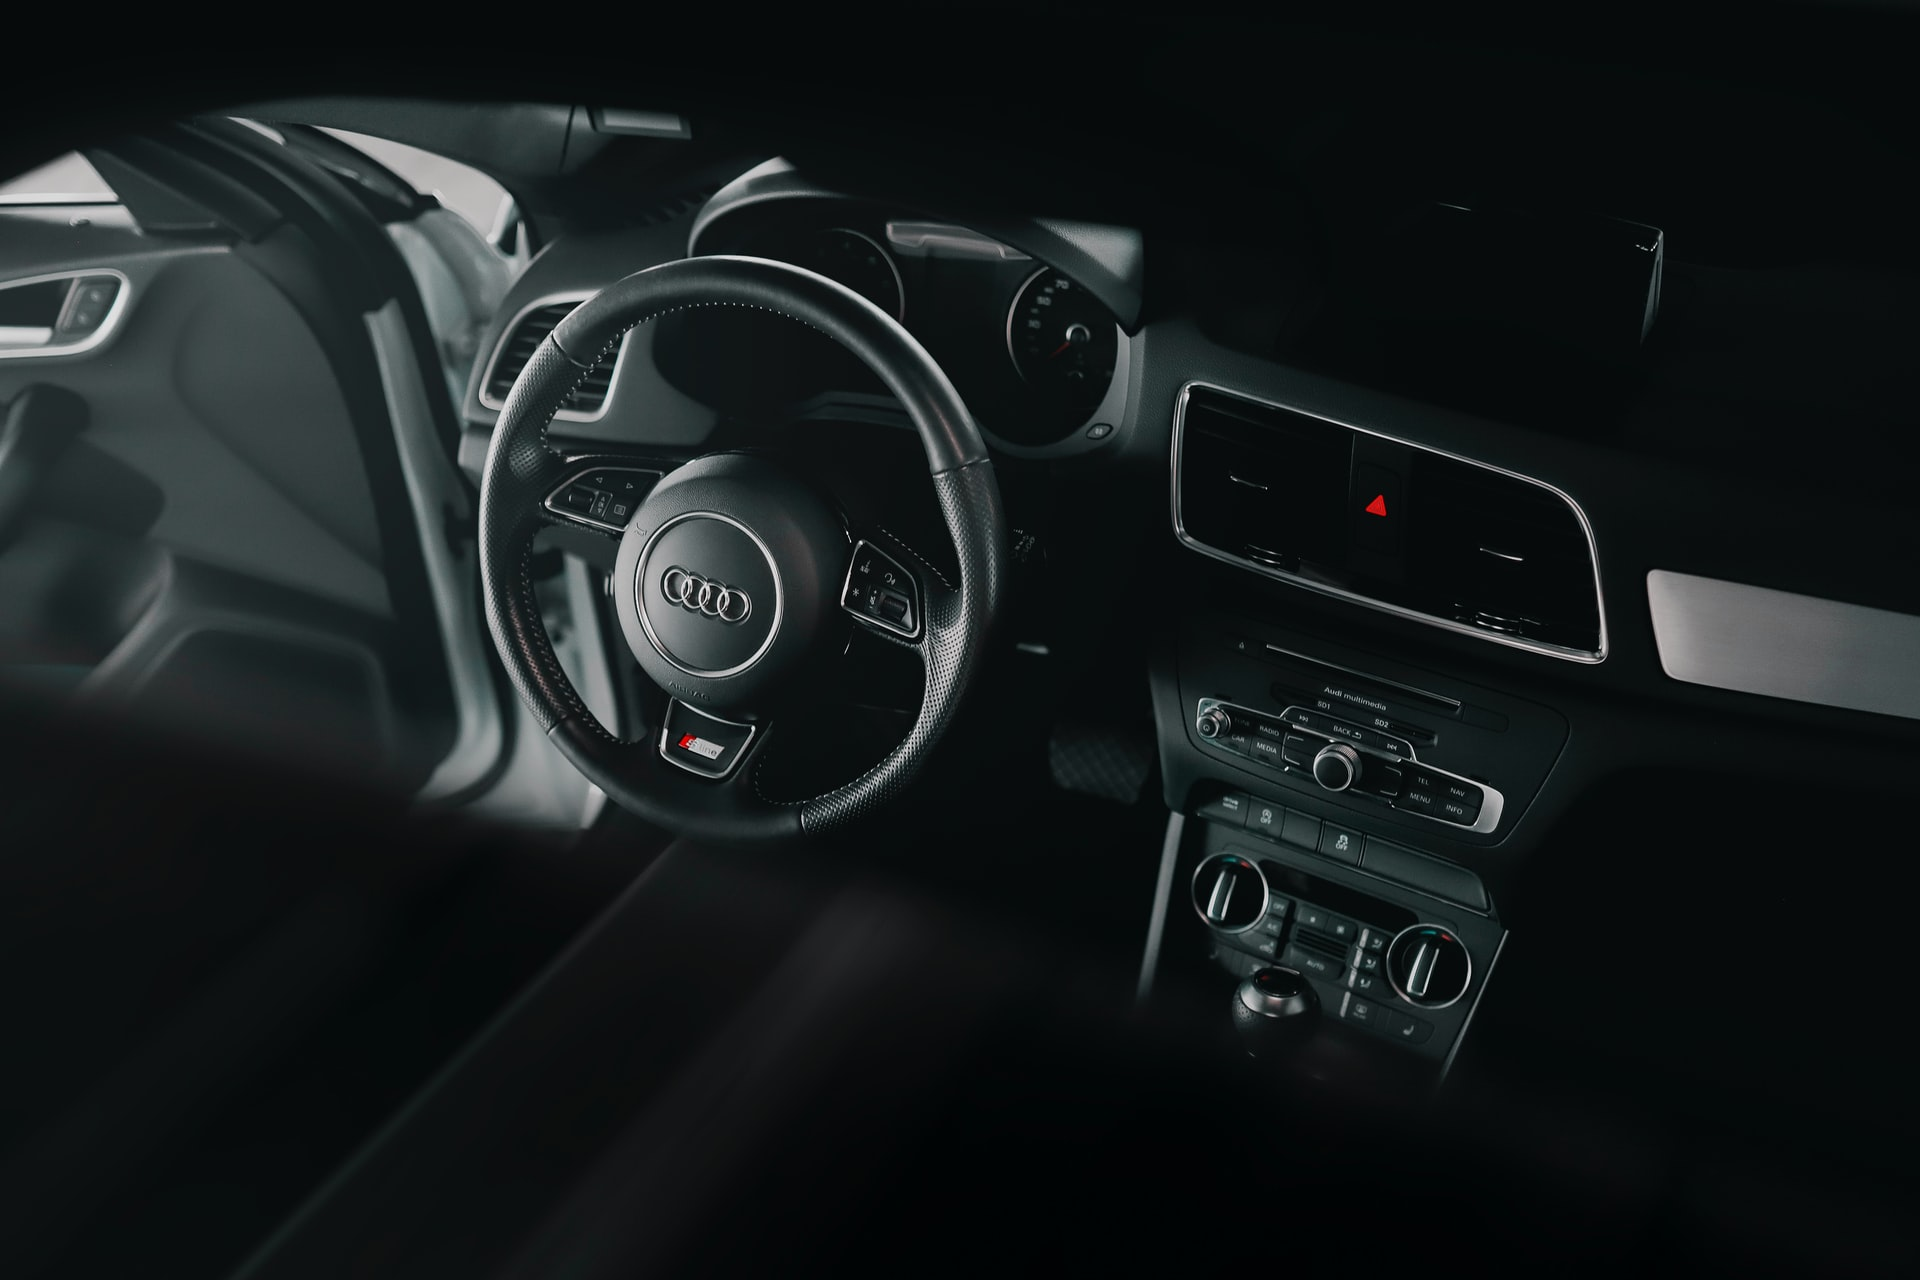 Car Accessories to Make Your Car Feel Like Home